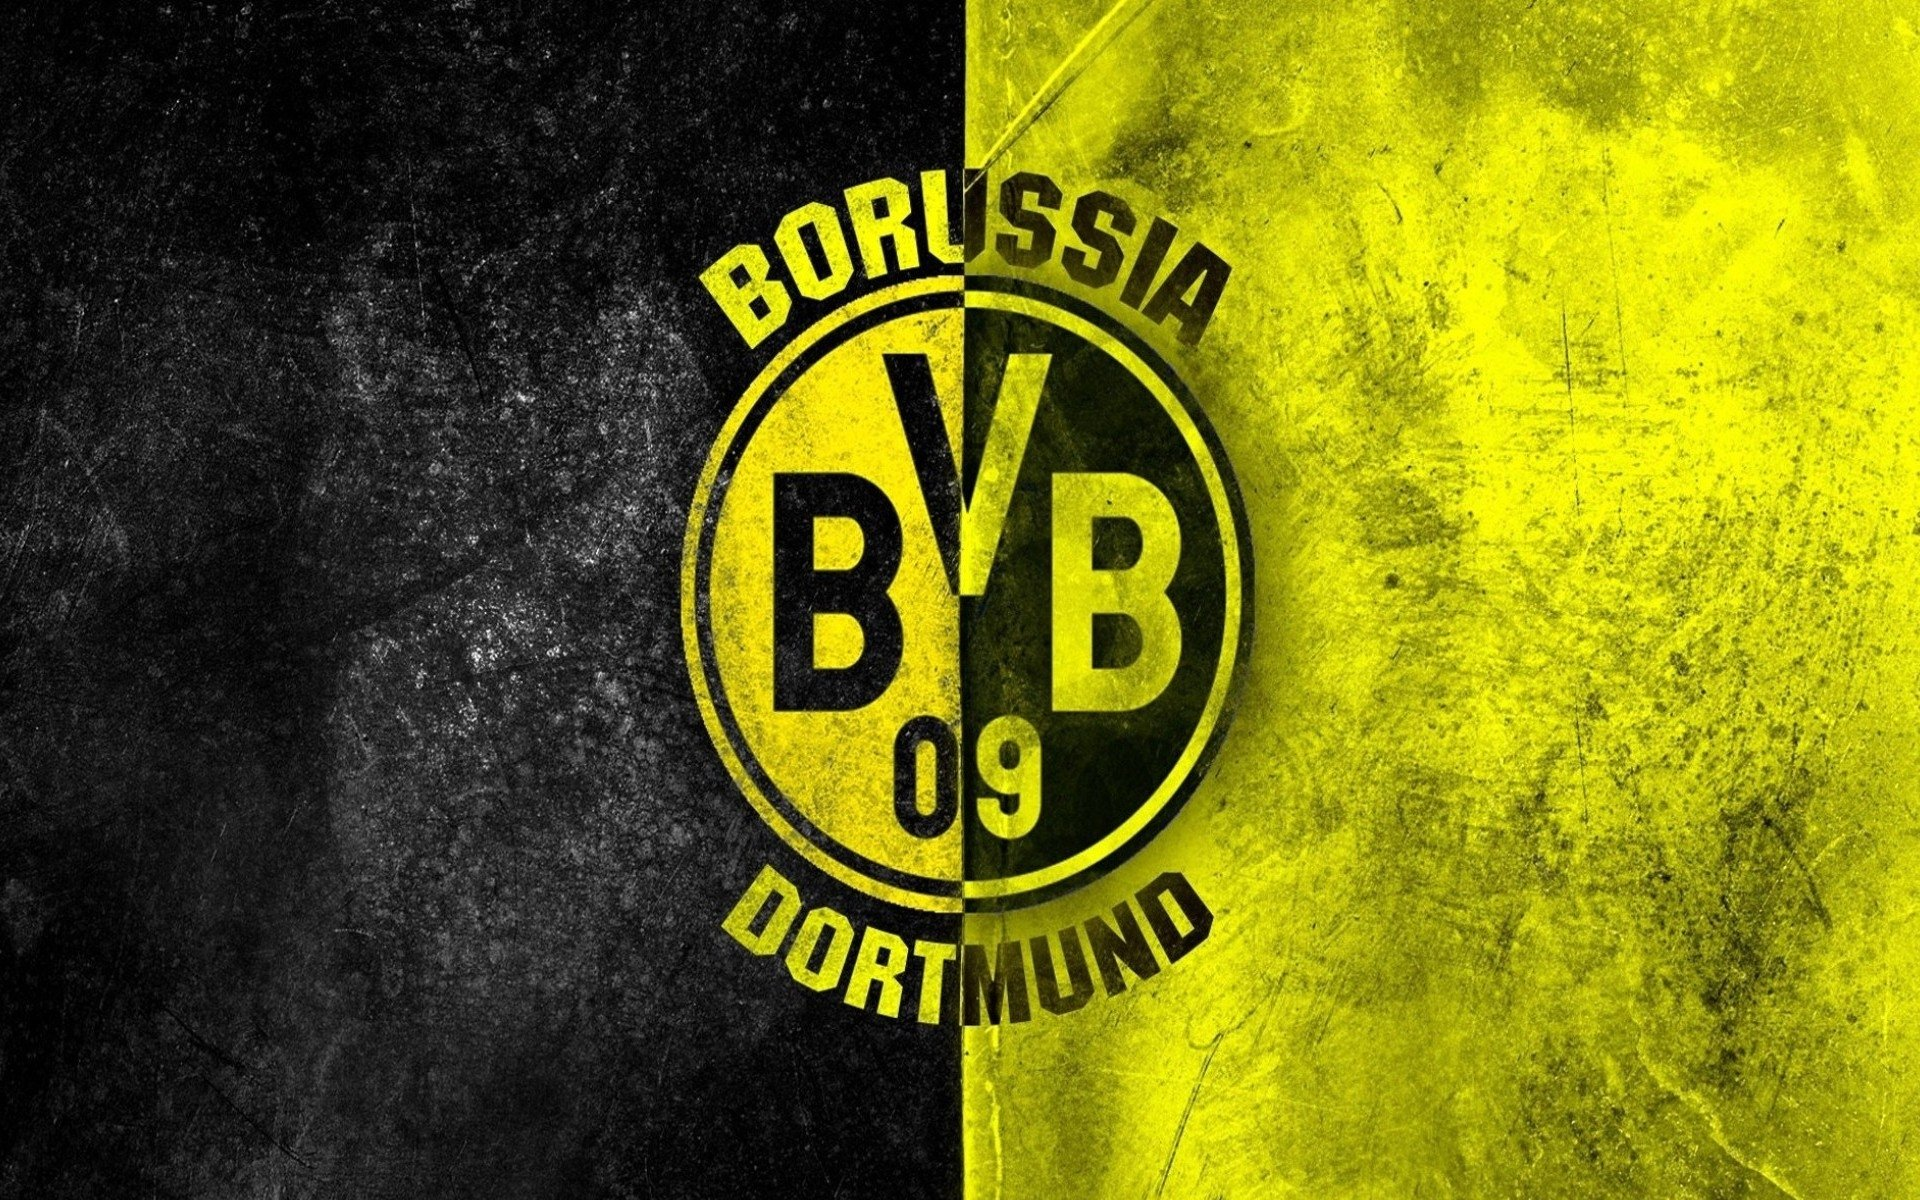 Bvb dortmund wallpaper hd